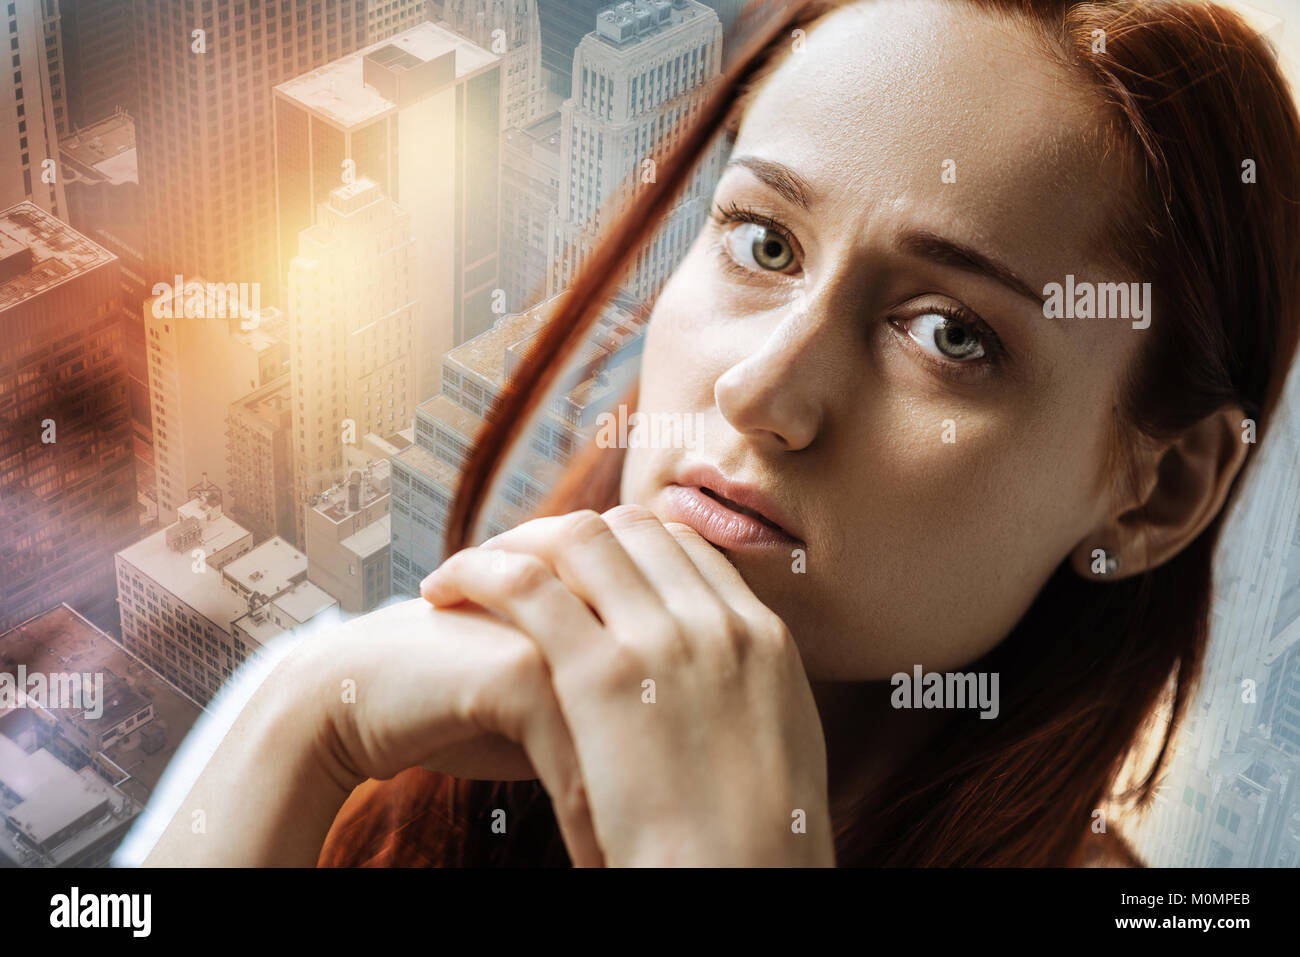 Stressful sad woman sitting and feeling bad herself. - Stock Image